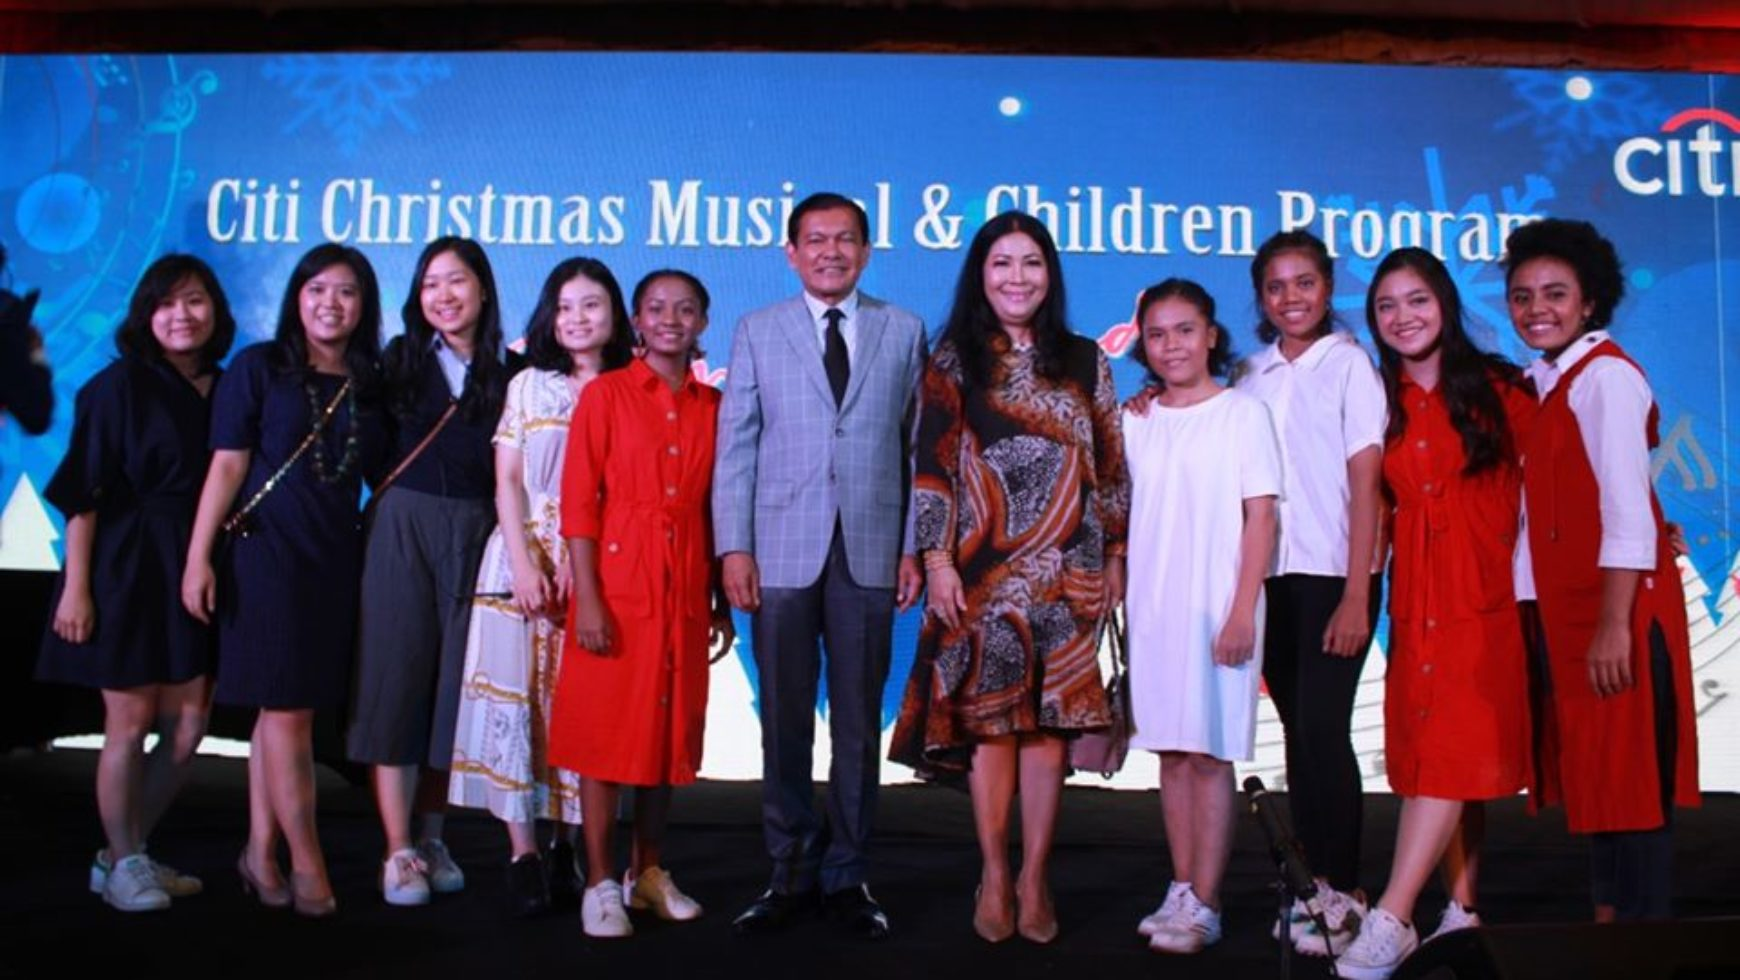 Citi Christmas Musical & Children Program